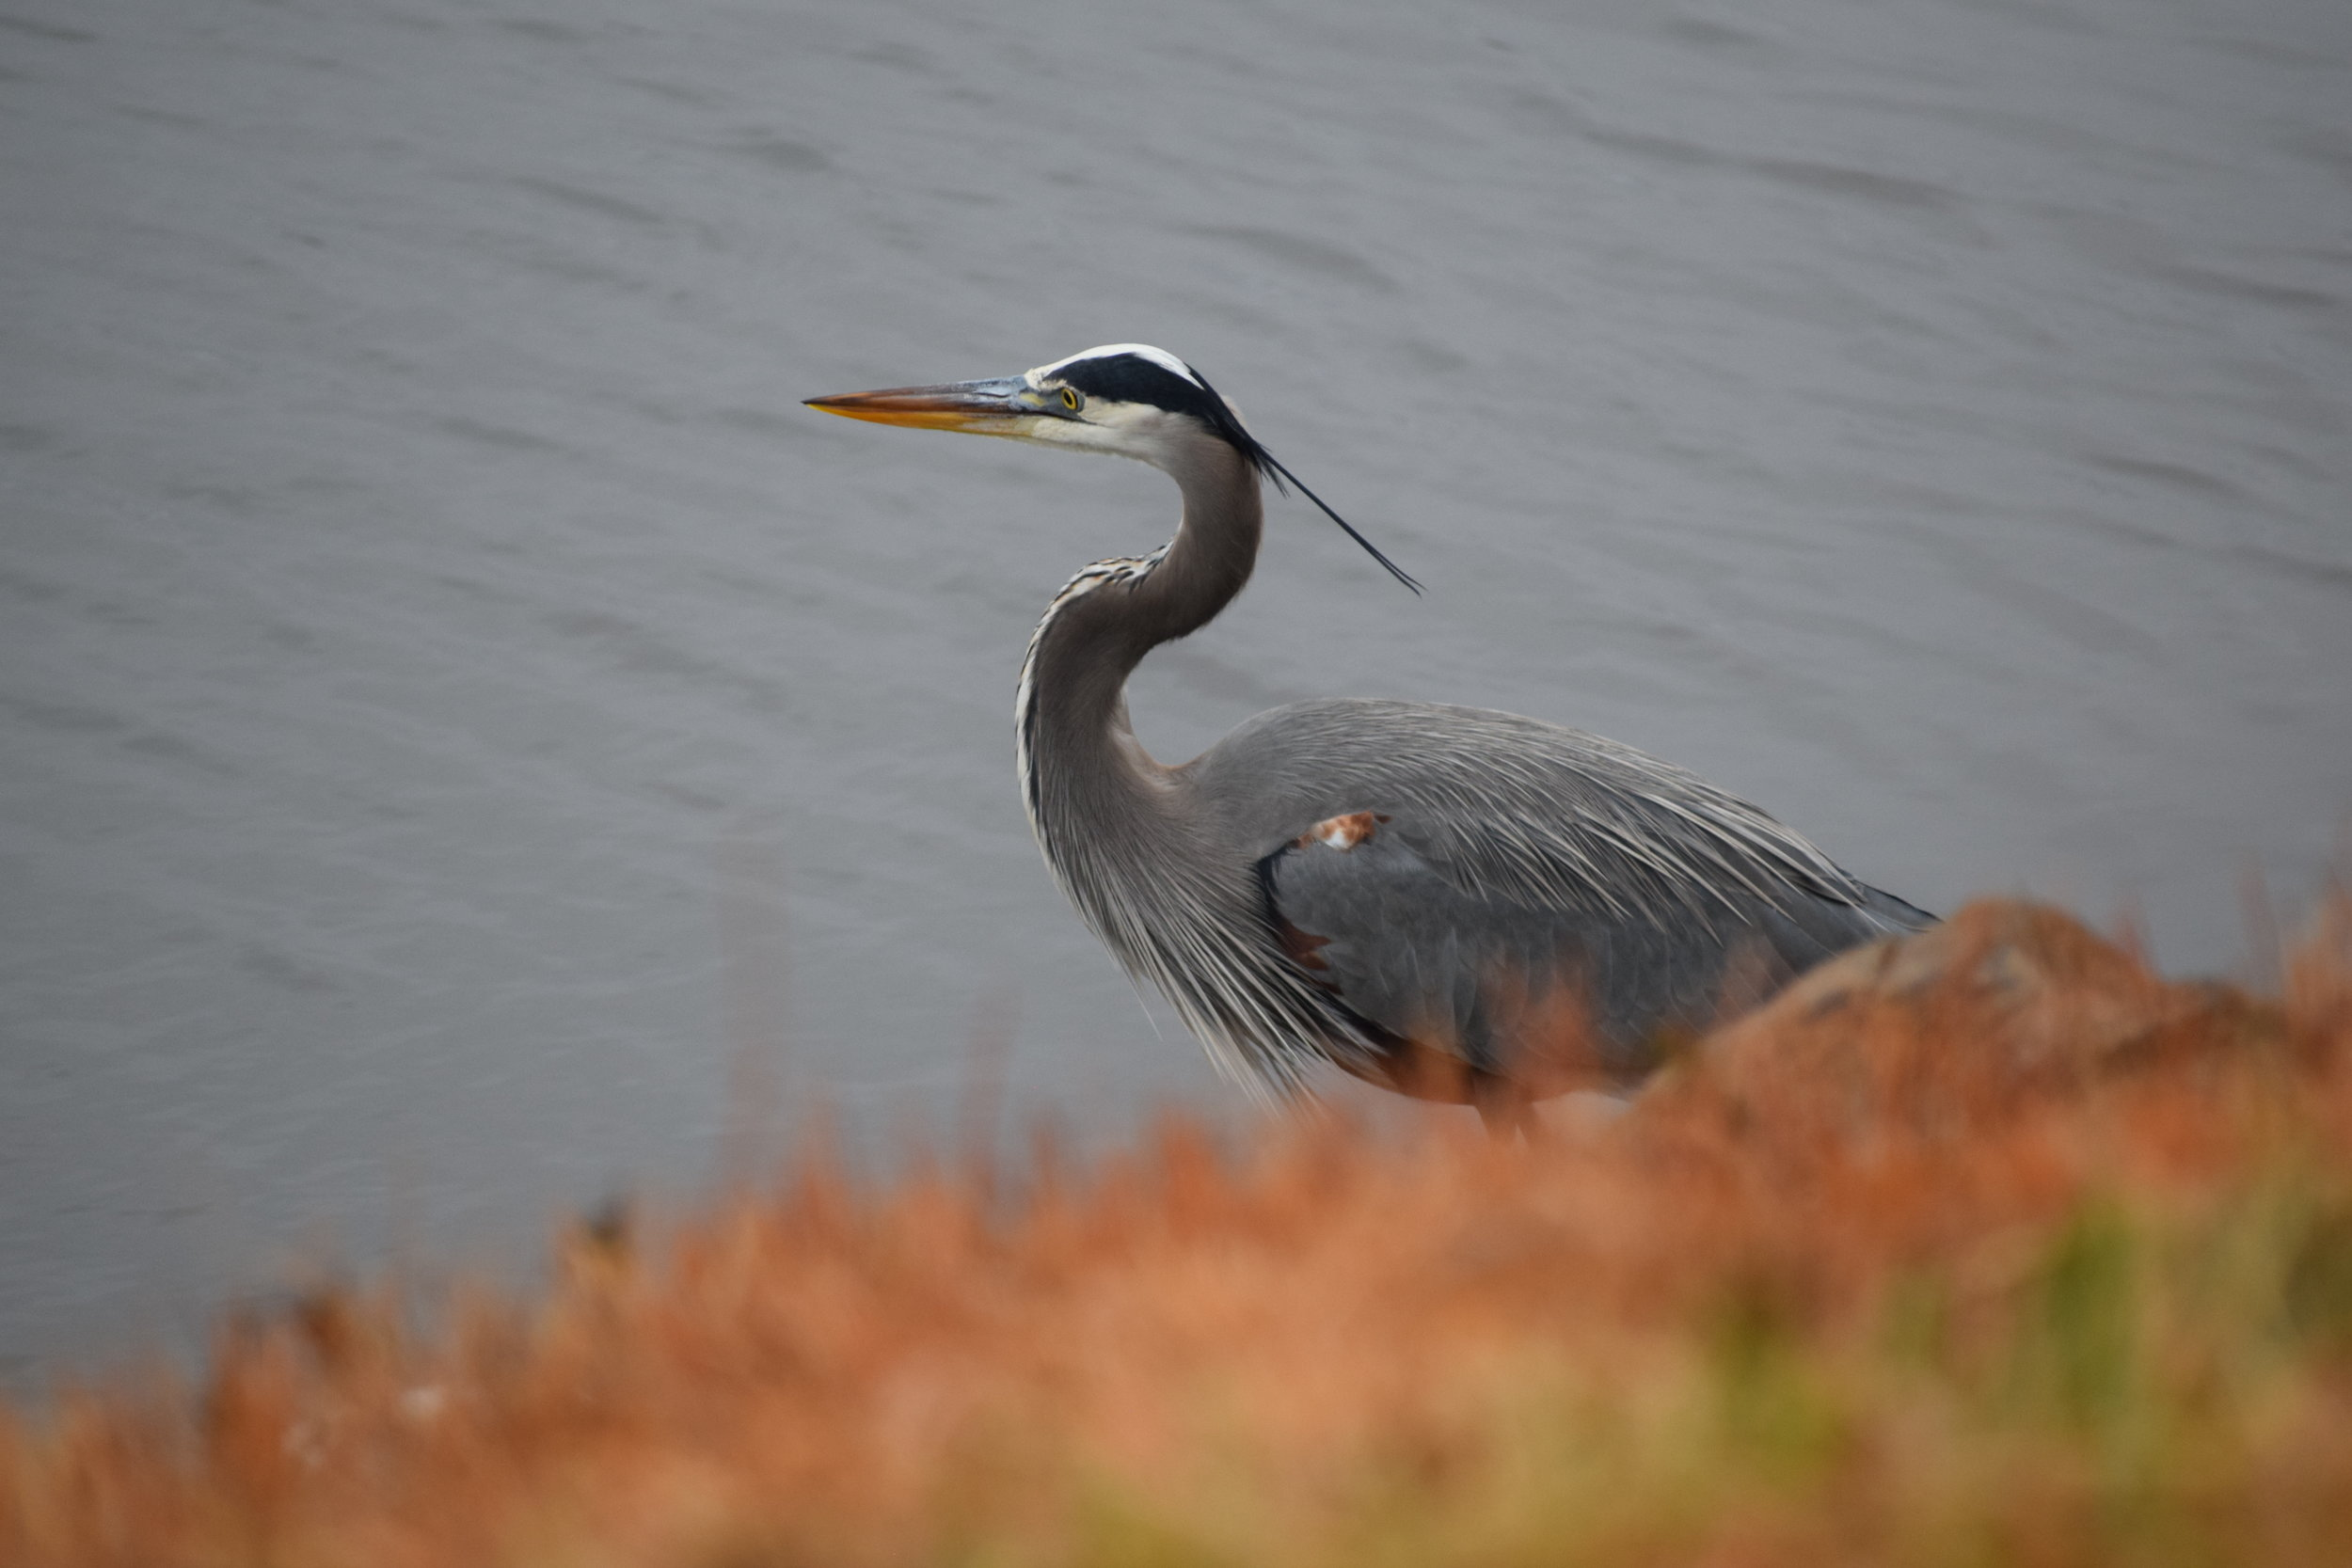 Great blue heron at Blackwater Refuge on the Eastern Shore, near the Choptank River